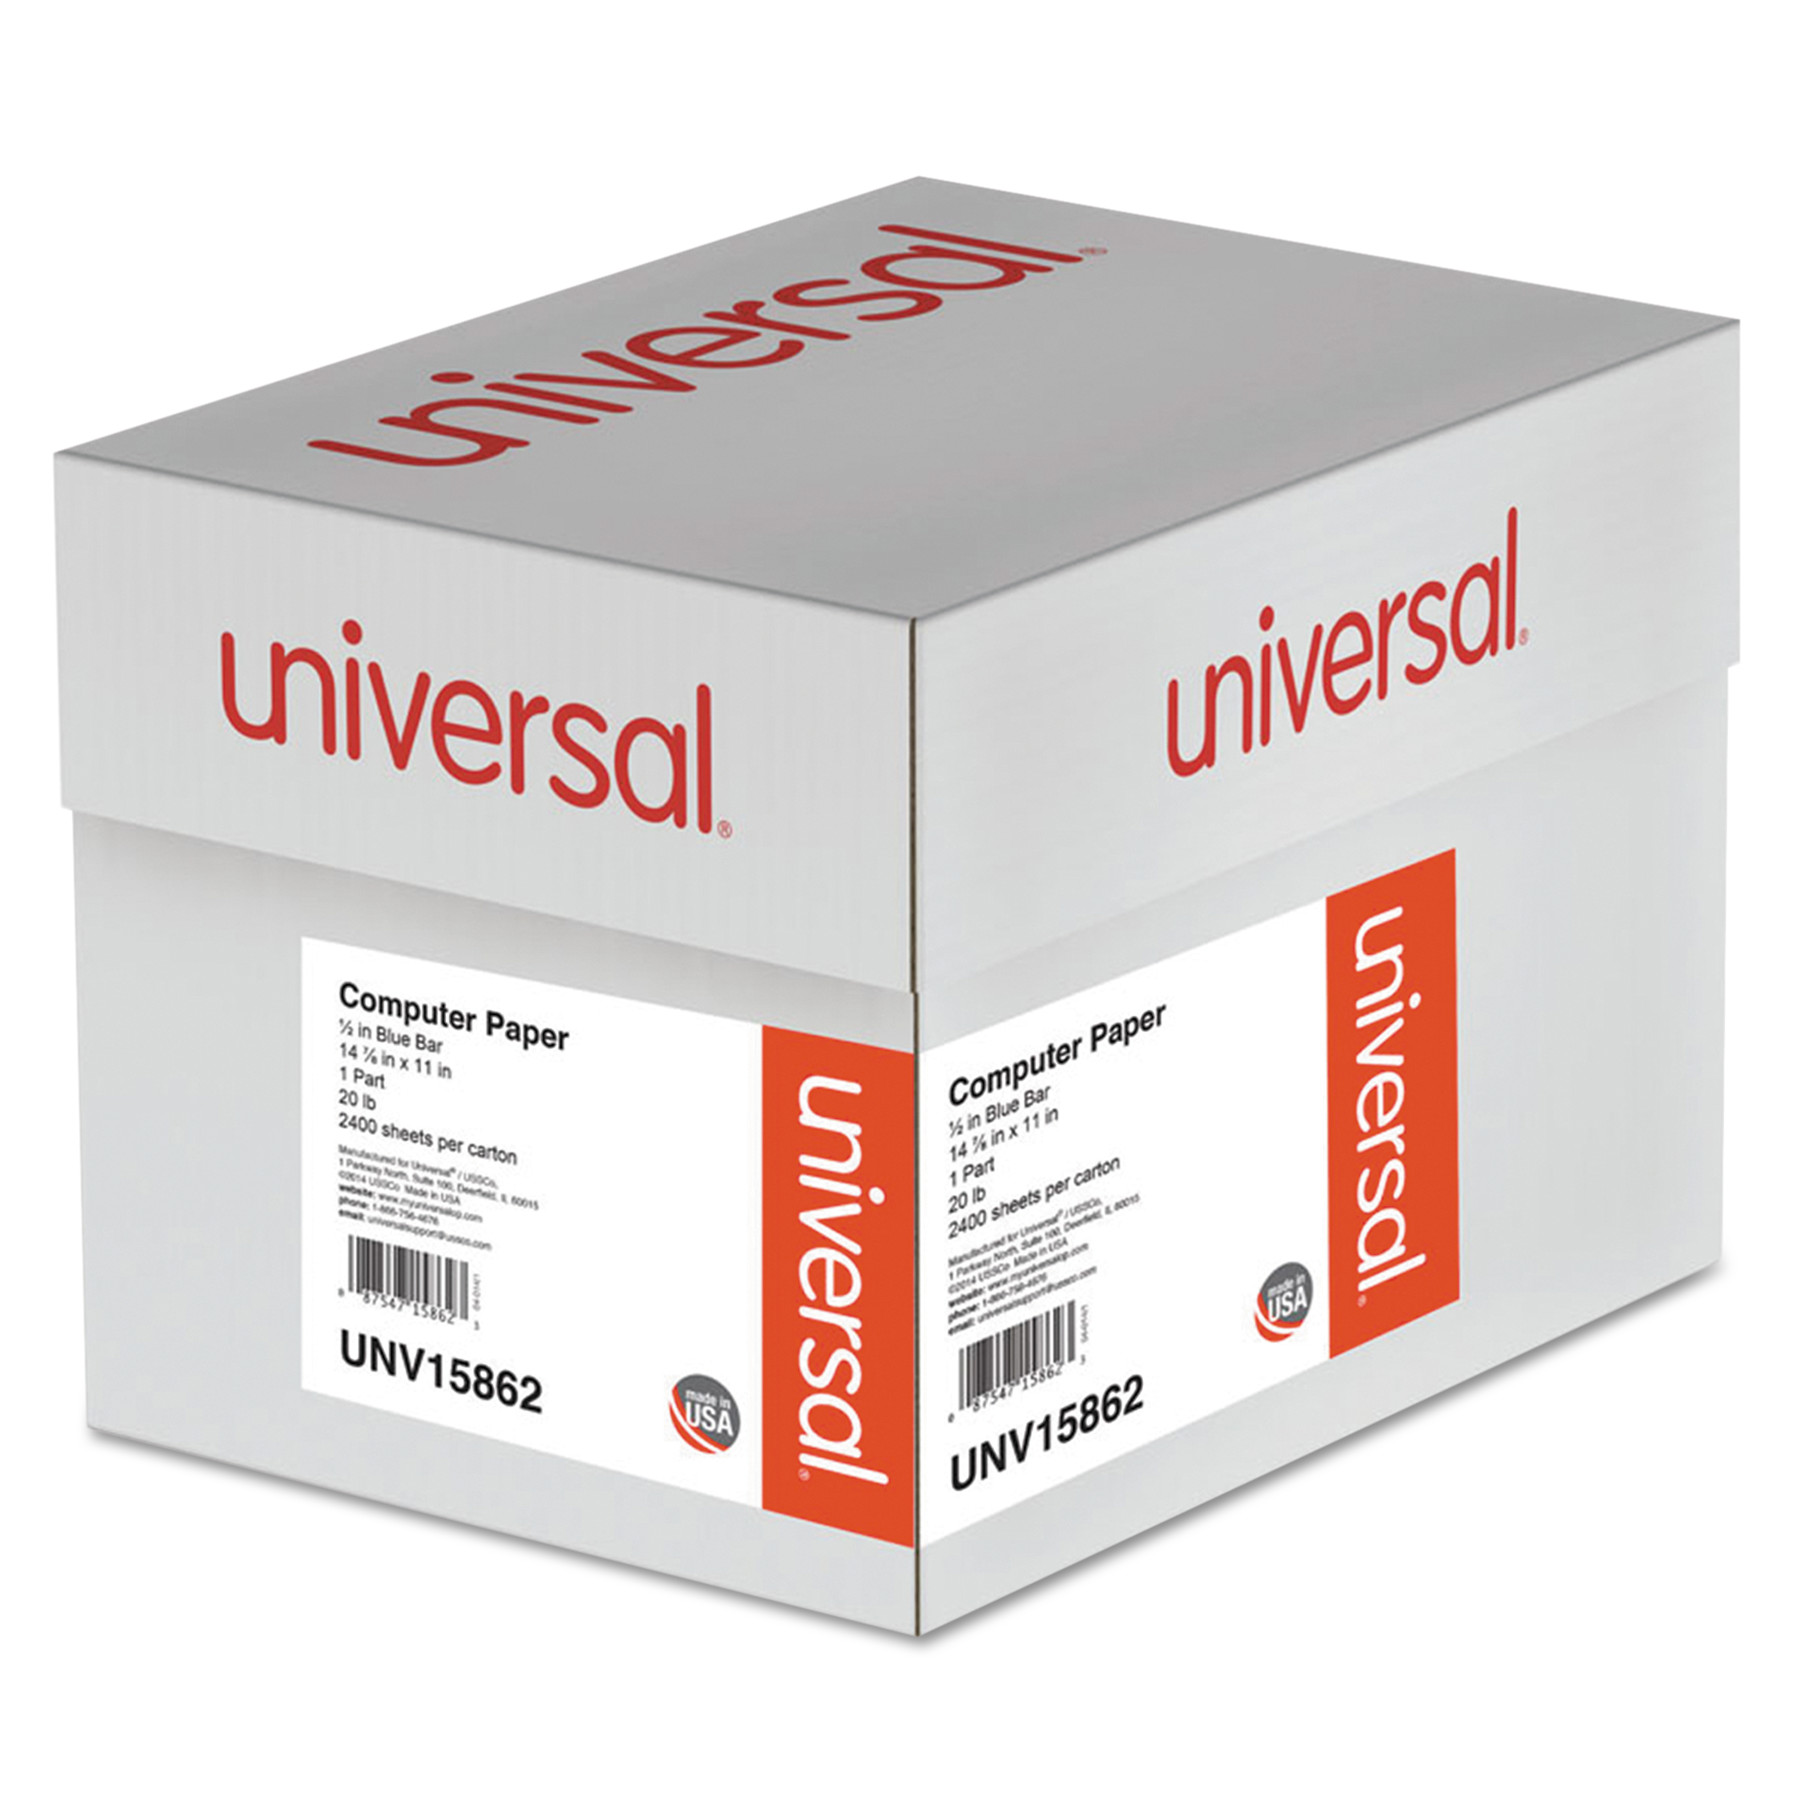 Universal Blue Bar Computer Paper, 20lb, 14-7/8 x 11, Perforated Margins, 2400 Sheets